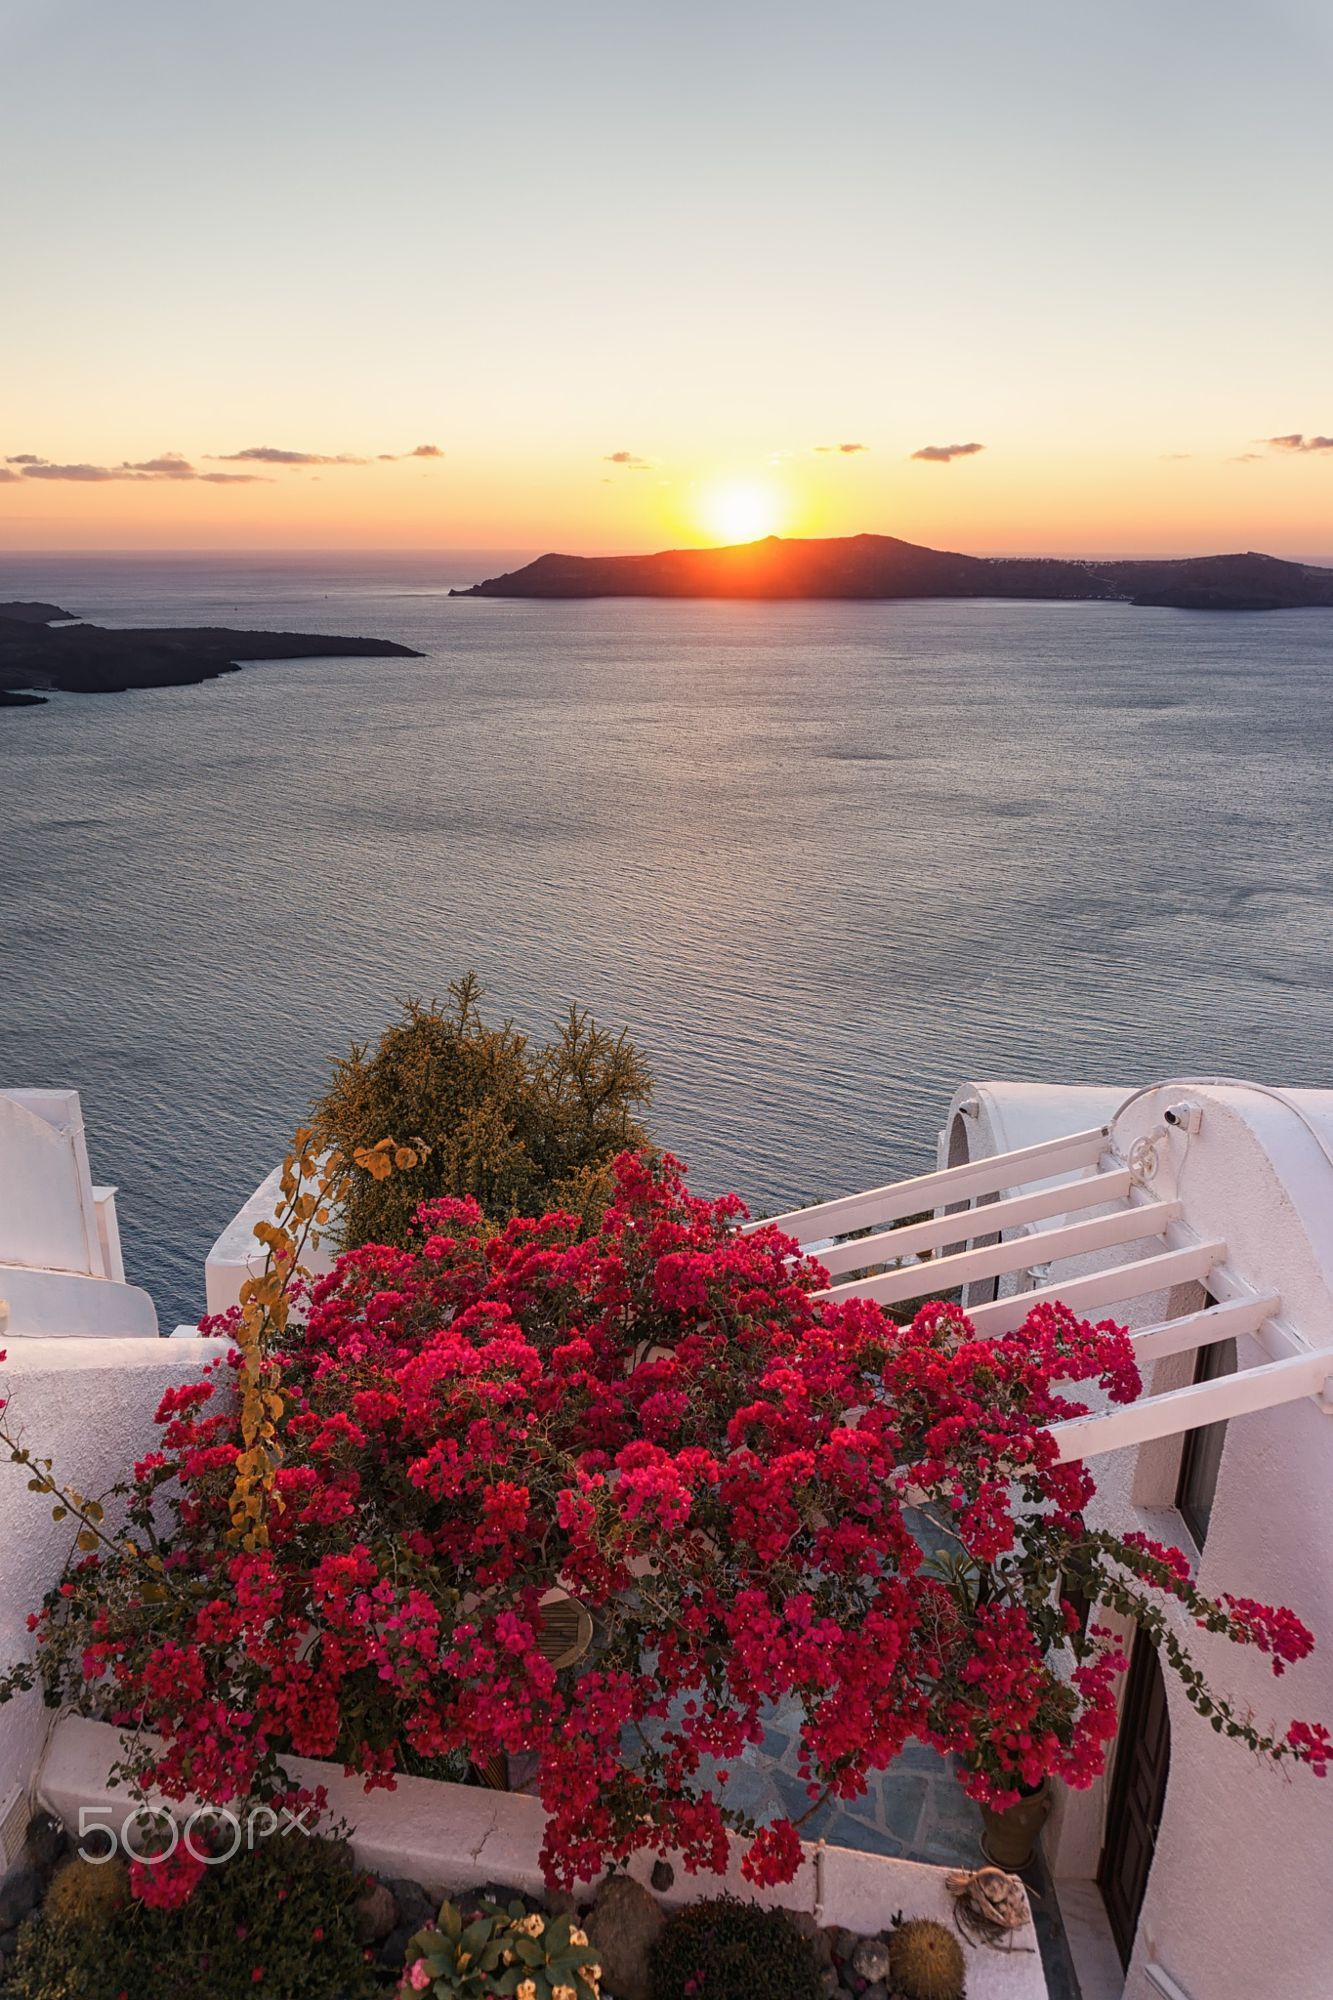 Sunset in Fira, Santorini, Greece                                                                                                                                                                                 More